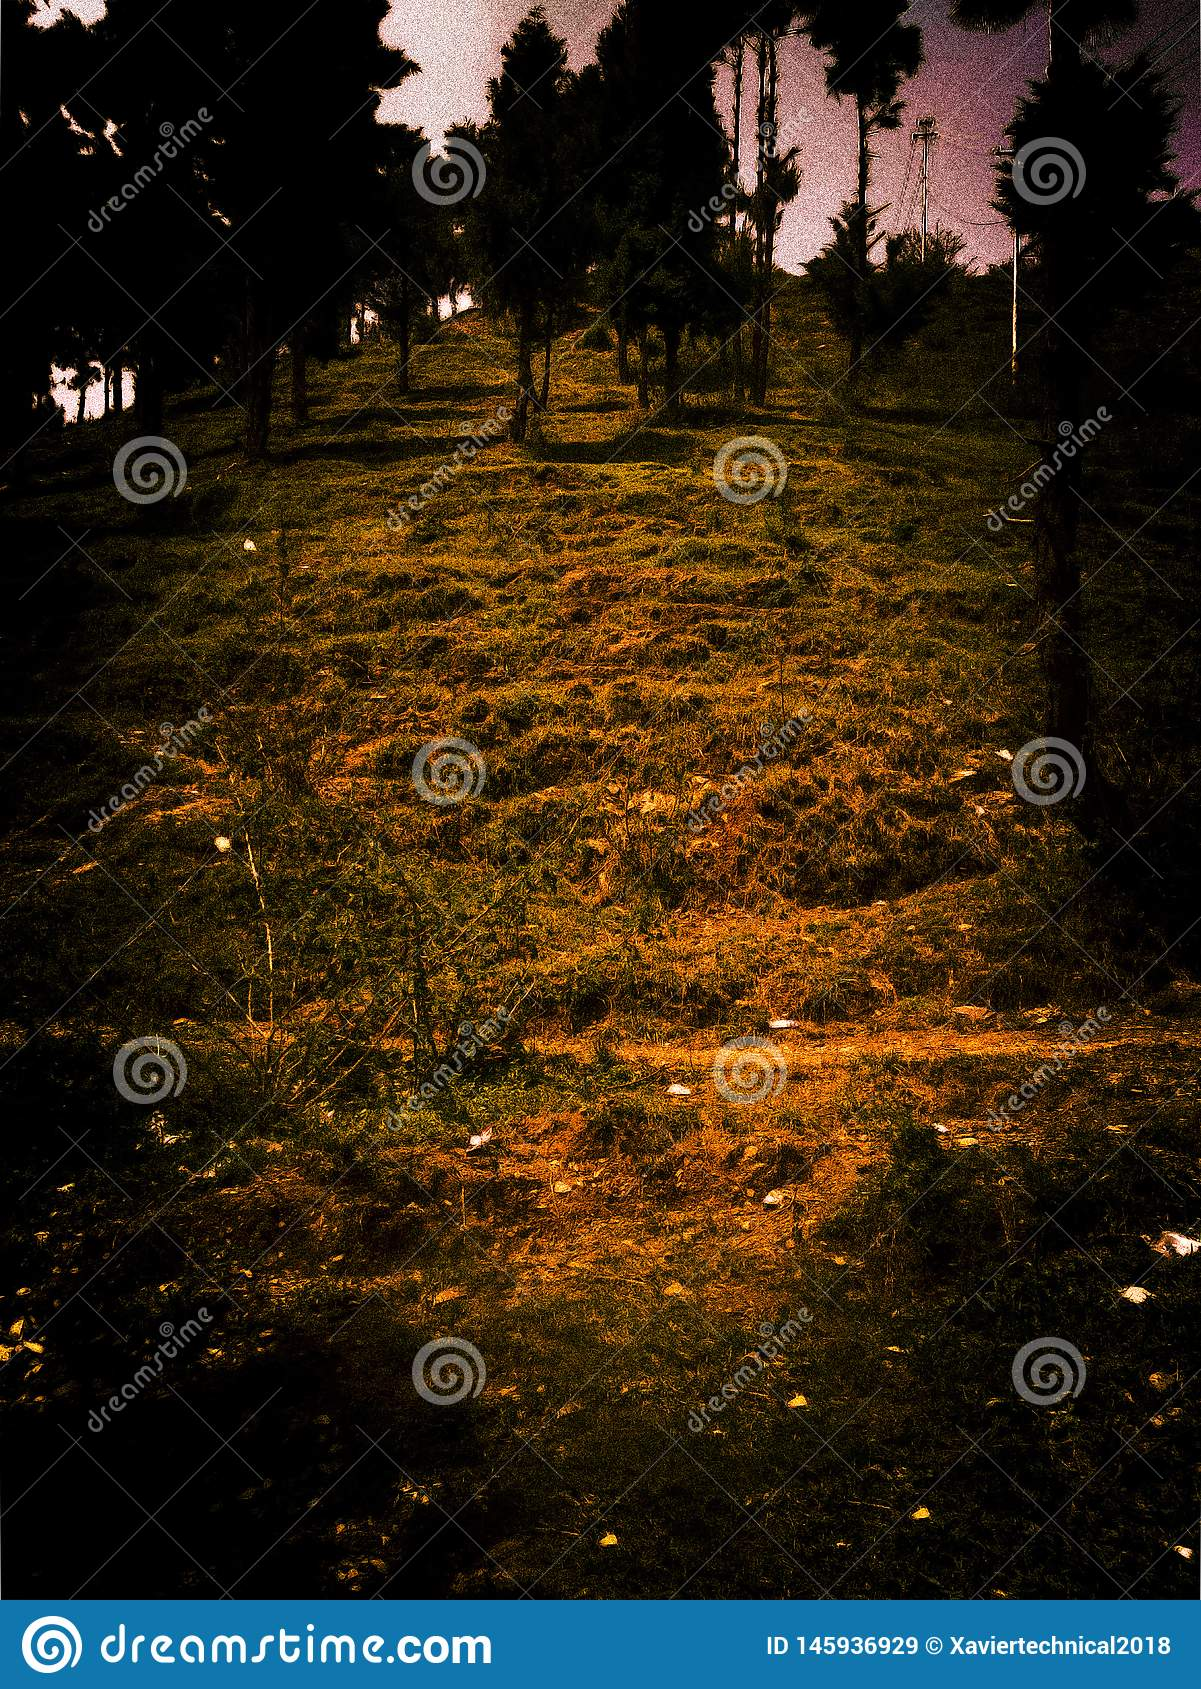 Dark night scene in a forest